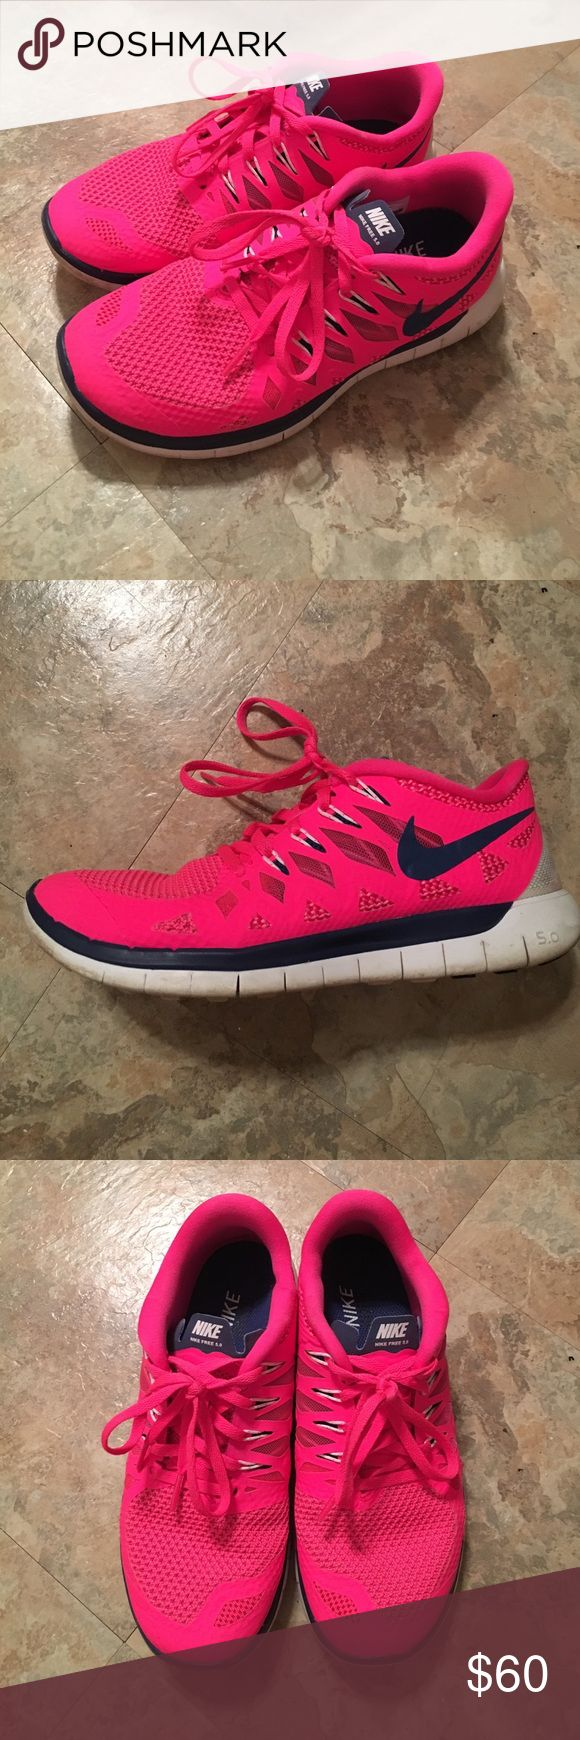 Nike Free 5.0 Hot pink and purple Nike Free 5.0's in good condition. Not worn much since they were too small. Nike Shoes Sneakers